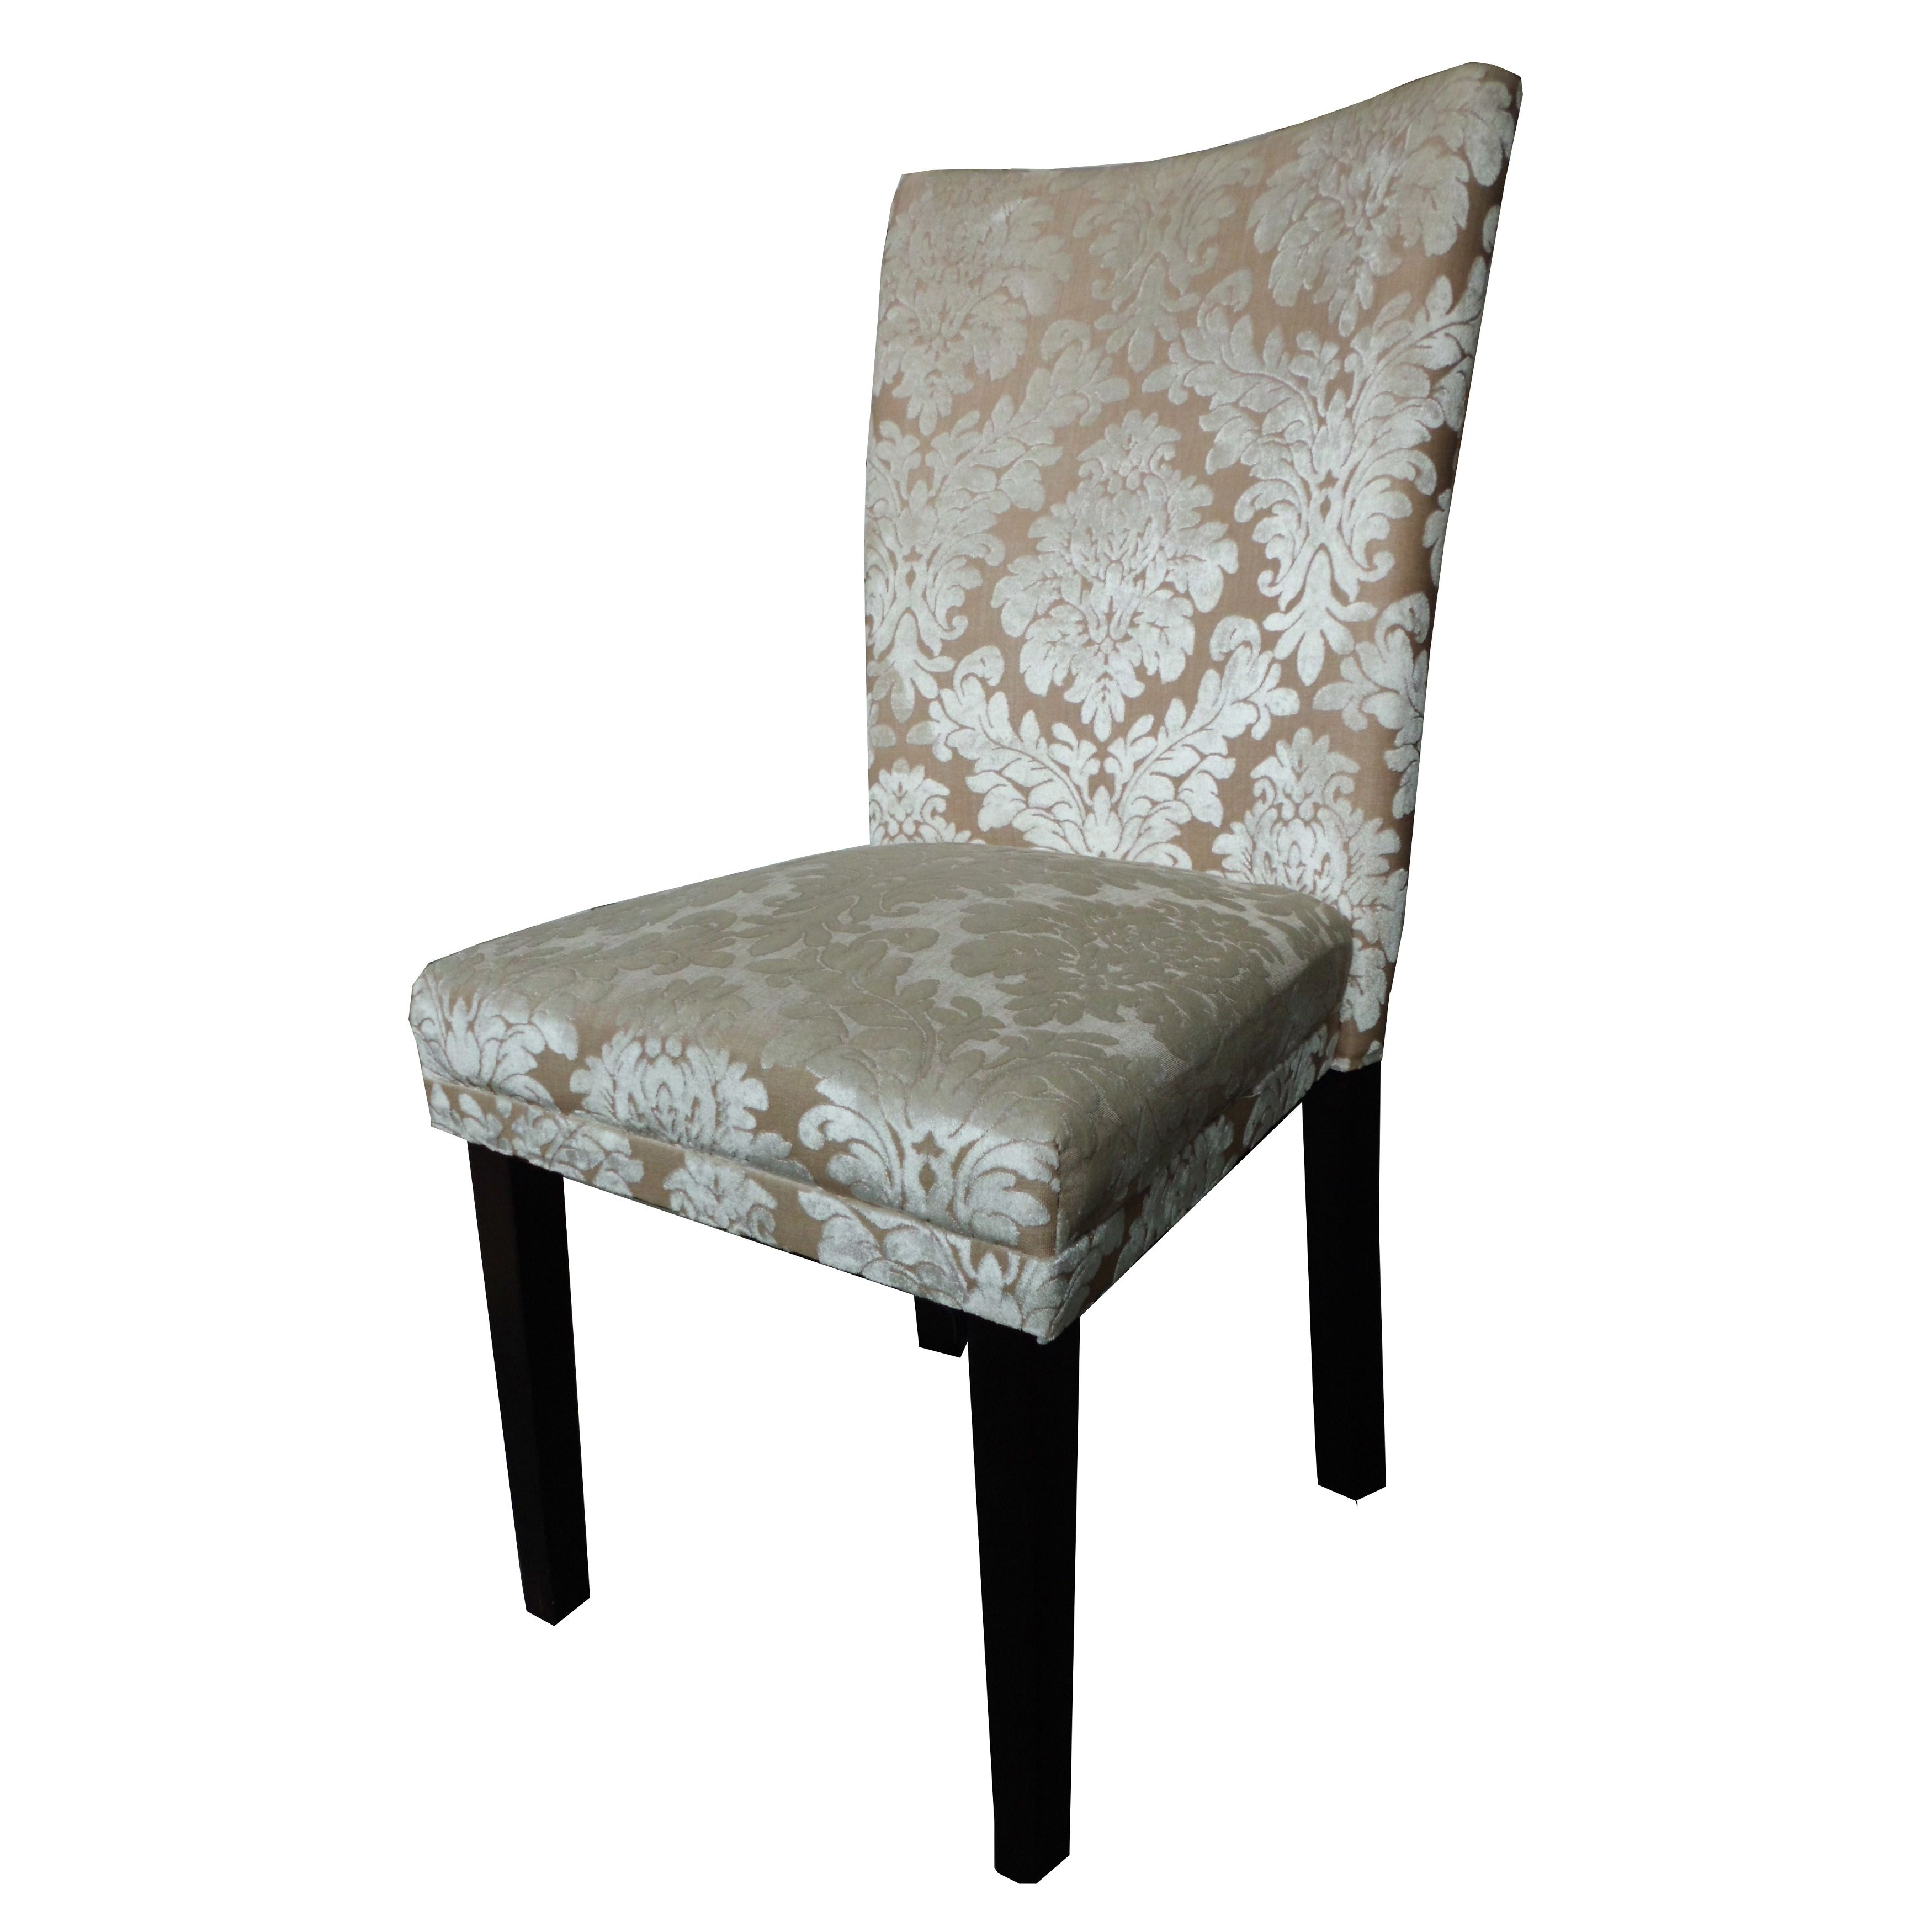 This damask dining chairs set adds a touch of beauty to your